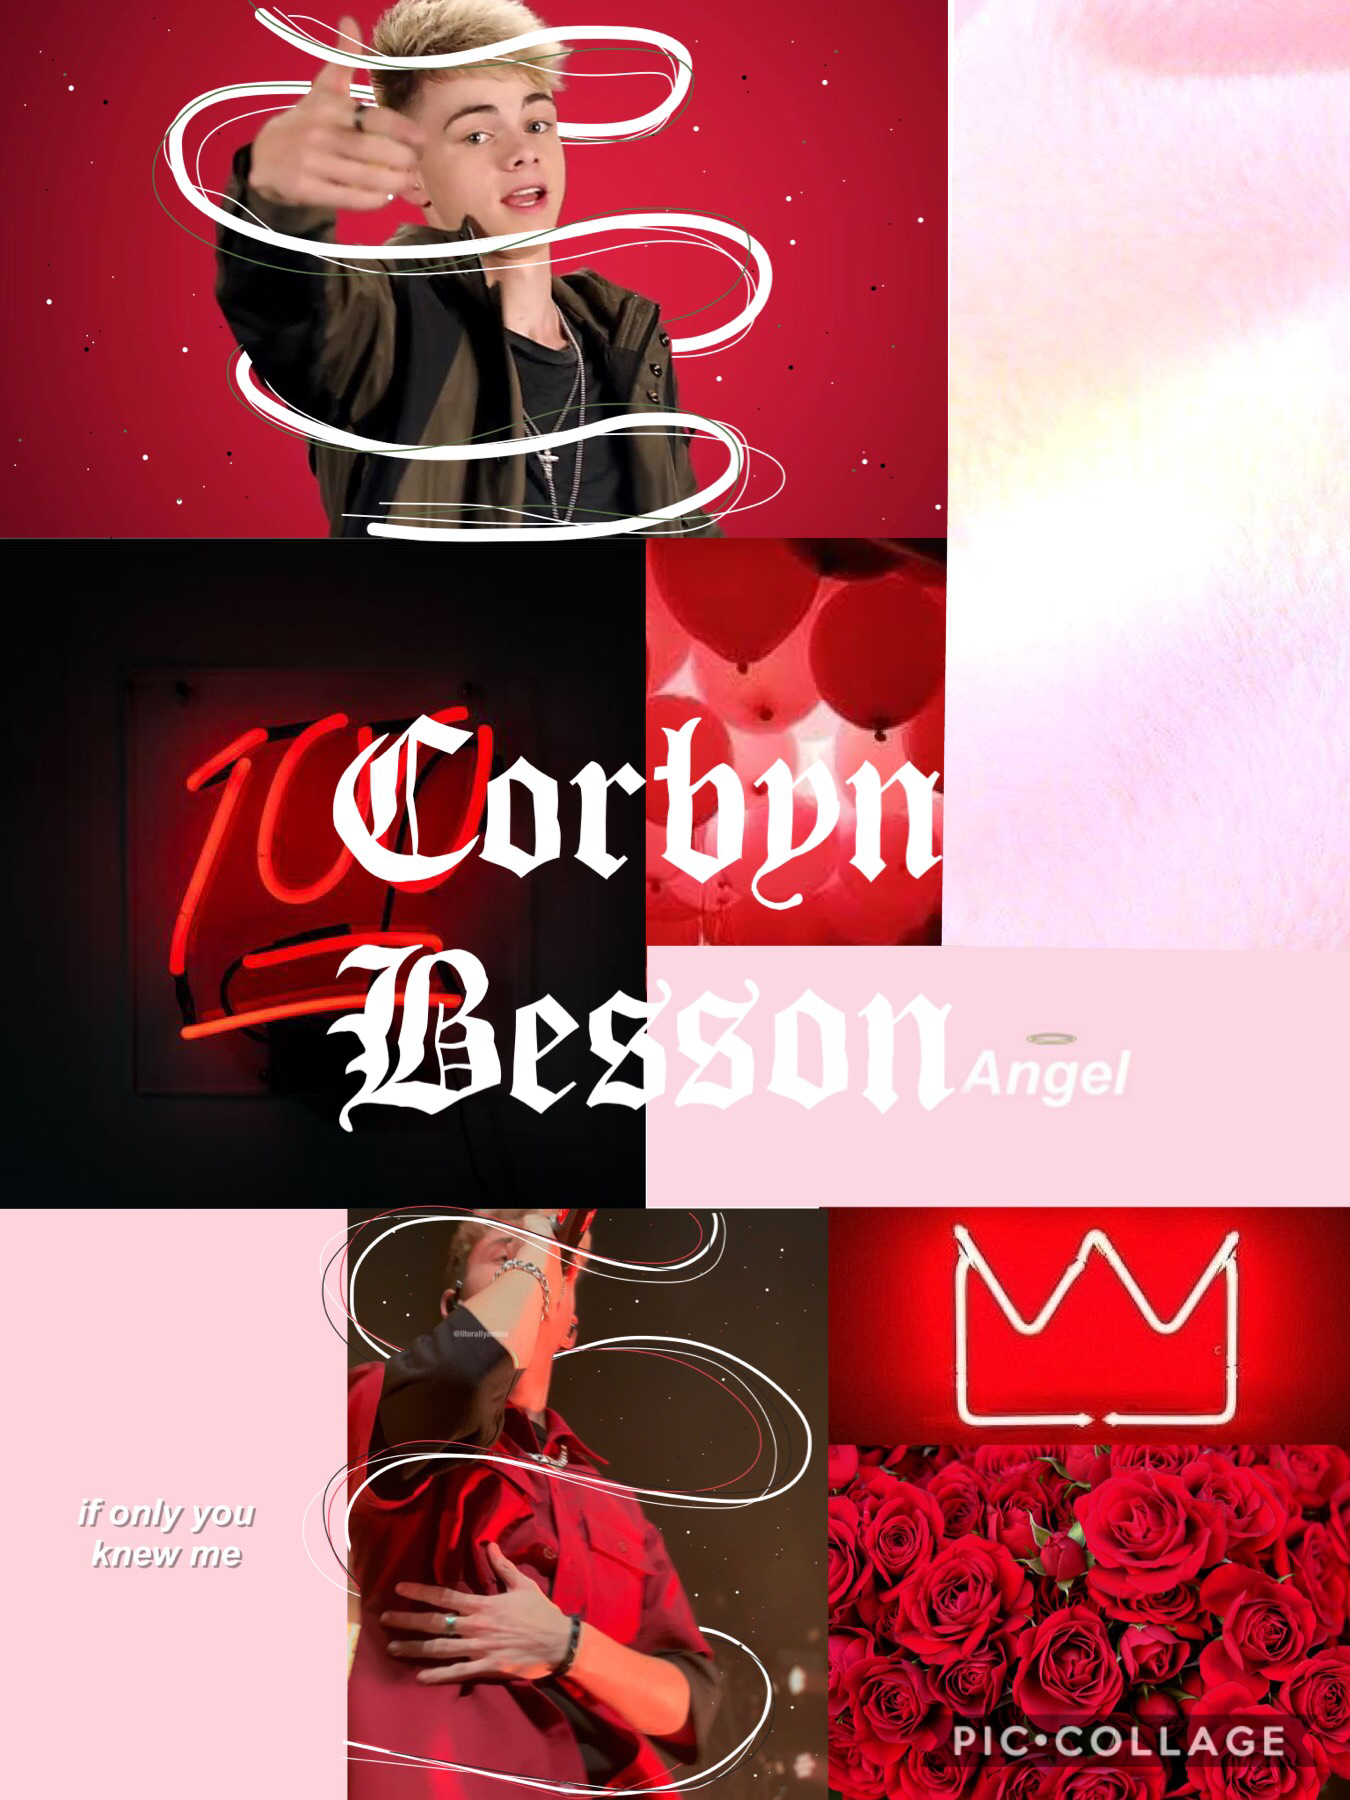 Corbyn Besson collage❤️❤️❤️ this is so bad omg😂